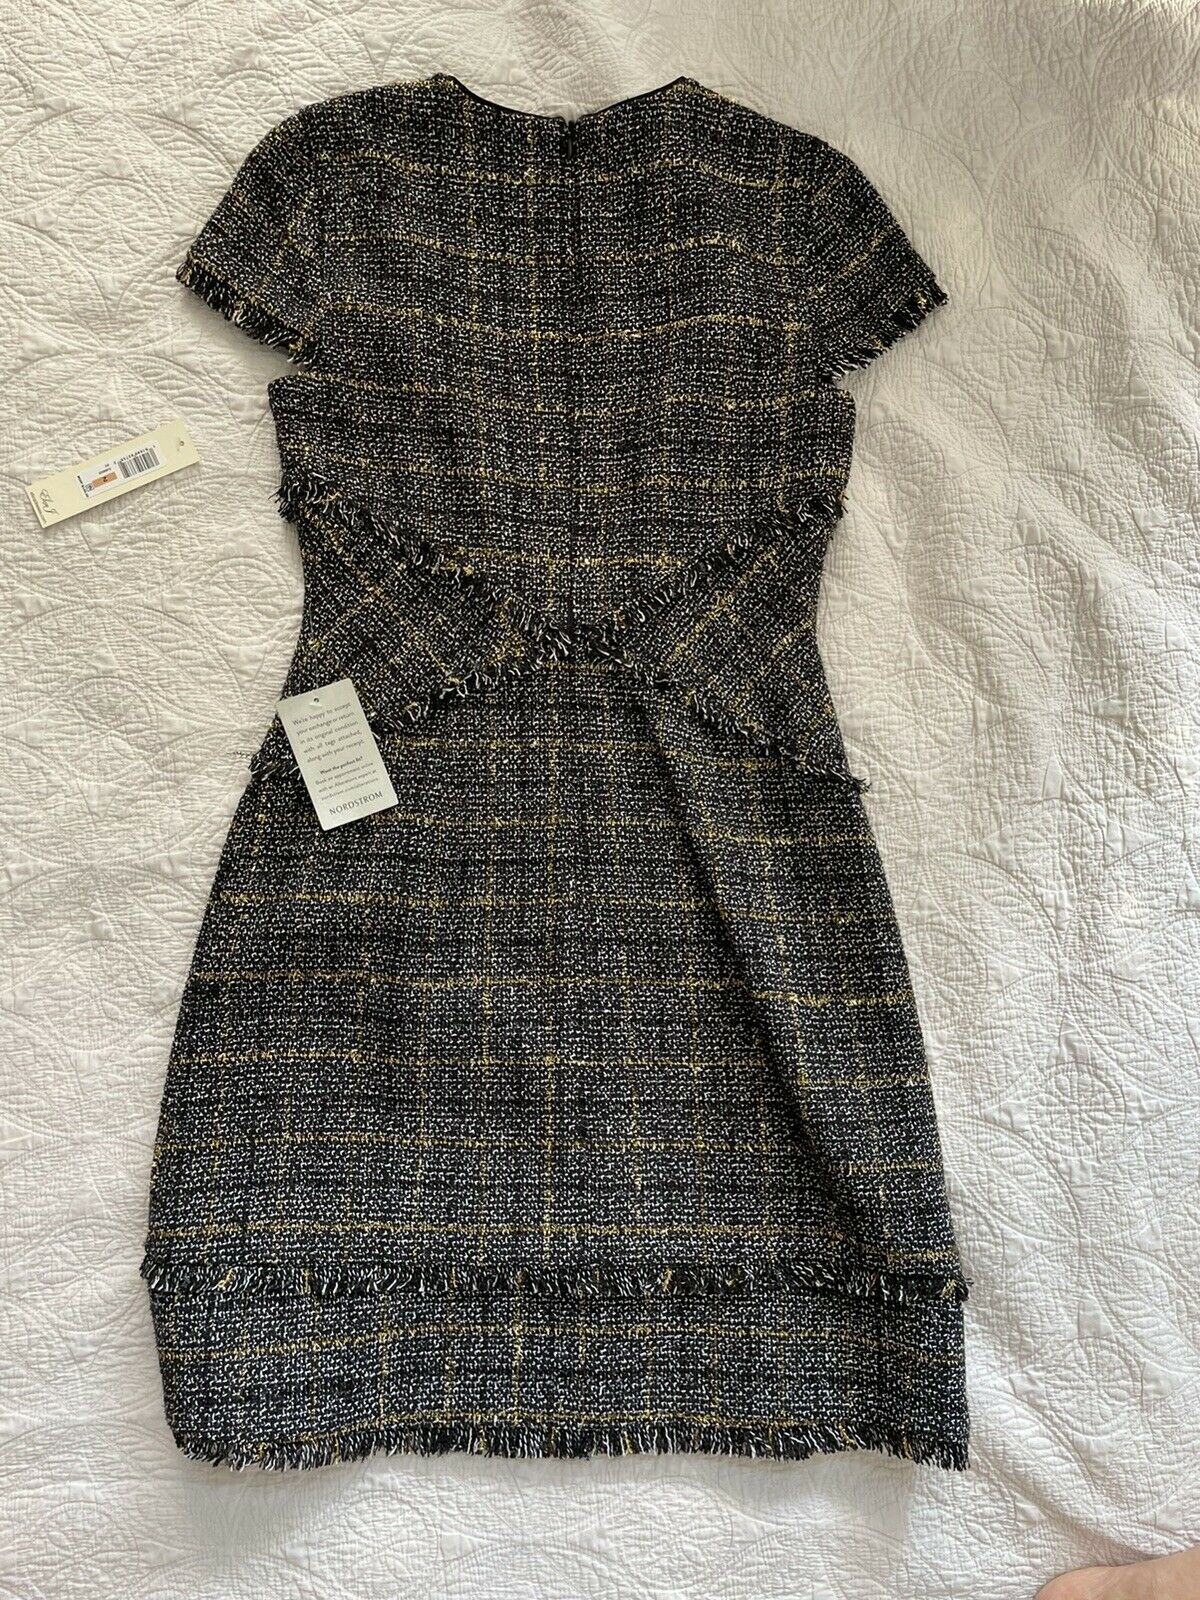 Eliza J Womans Sleeveless Special Occasion Cocktail Length Dress in Size 2